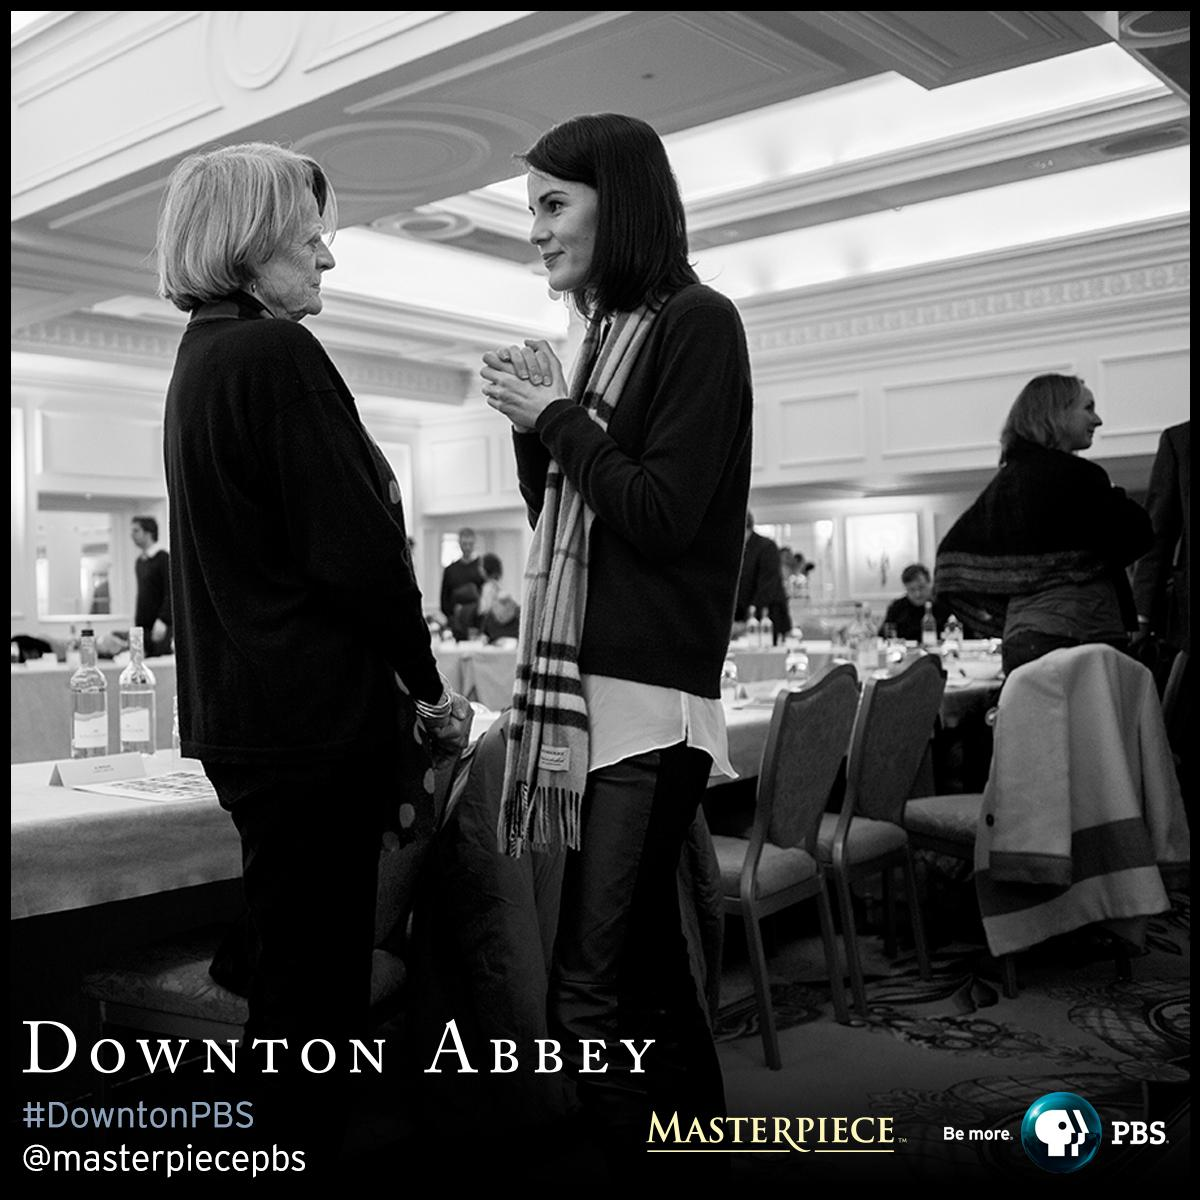 "It's official DowntonPBS Season 6 will be the final season. More info: http://t.co/sxu0WZP5rt @PBS http://t.co/yZ5K7ZdoY1"" that's all folks✋"